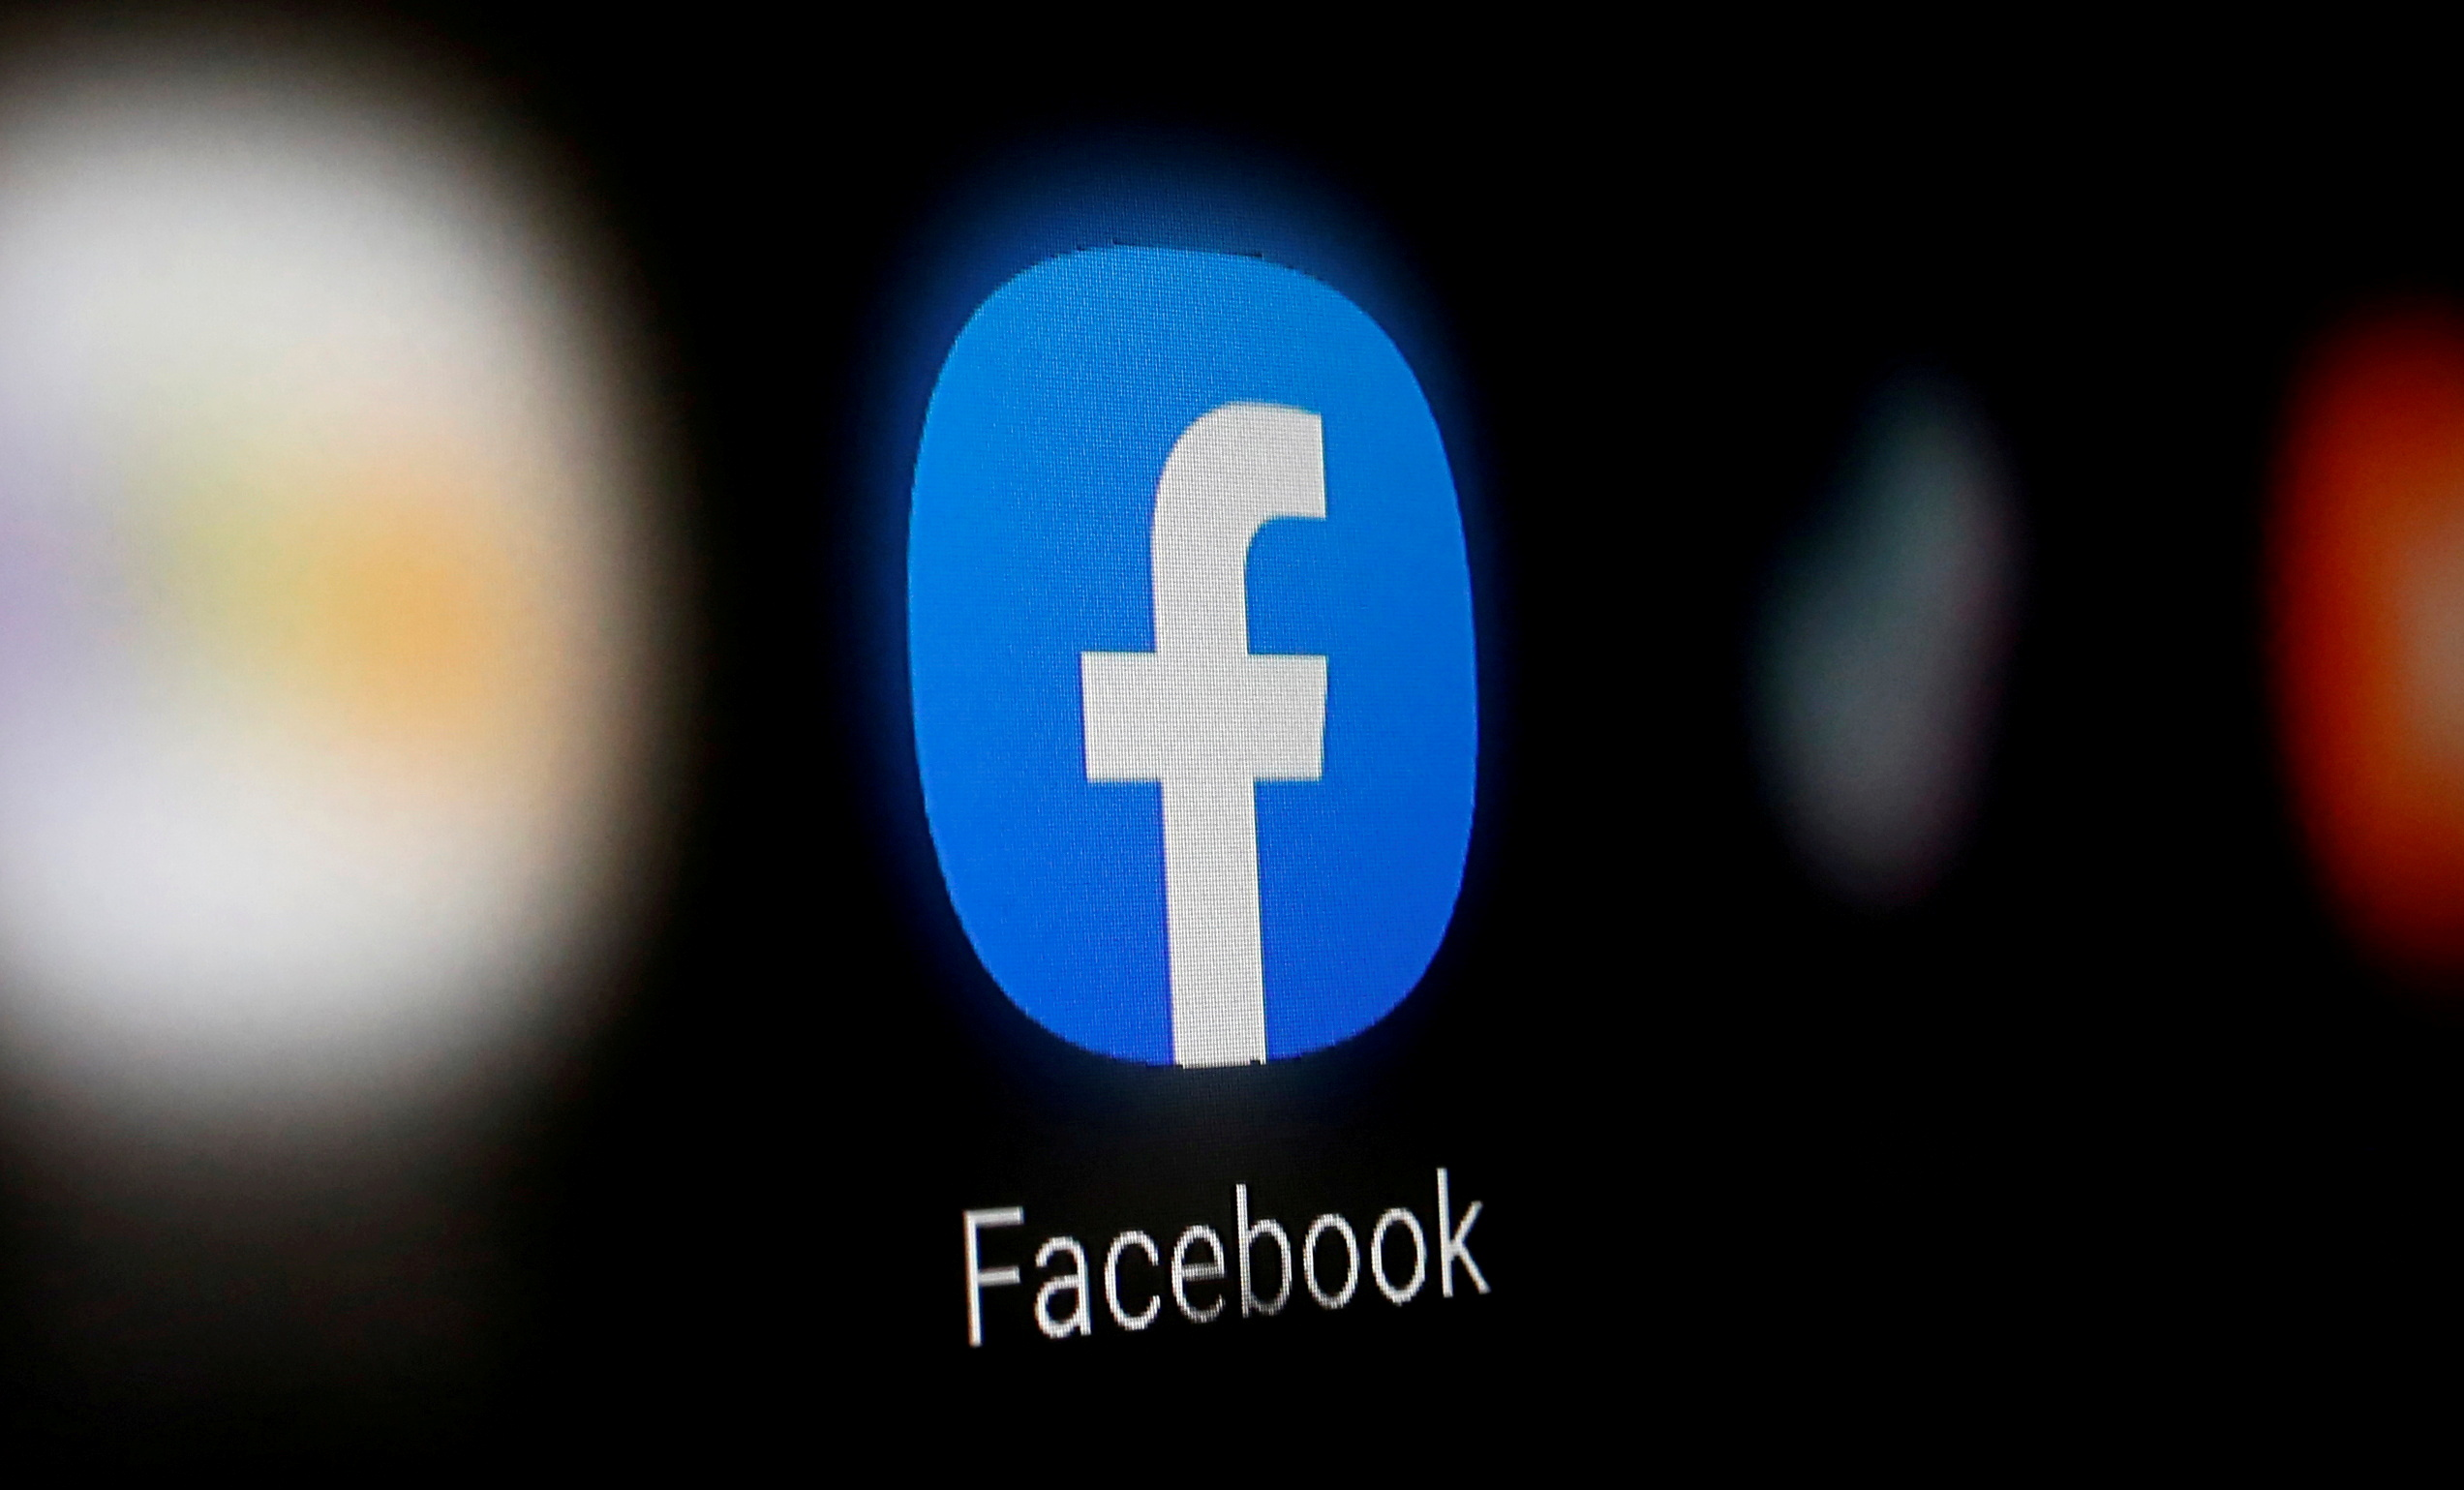 A Facebook logo is displayed on a smartphone in this illustration taken January 6, 2020. REUTERS/Dado Ruvic/Illustration